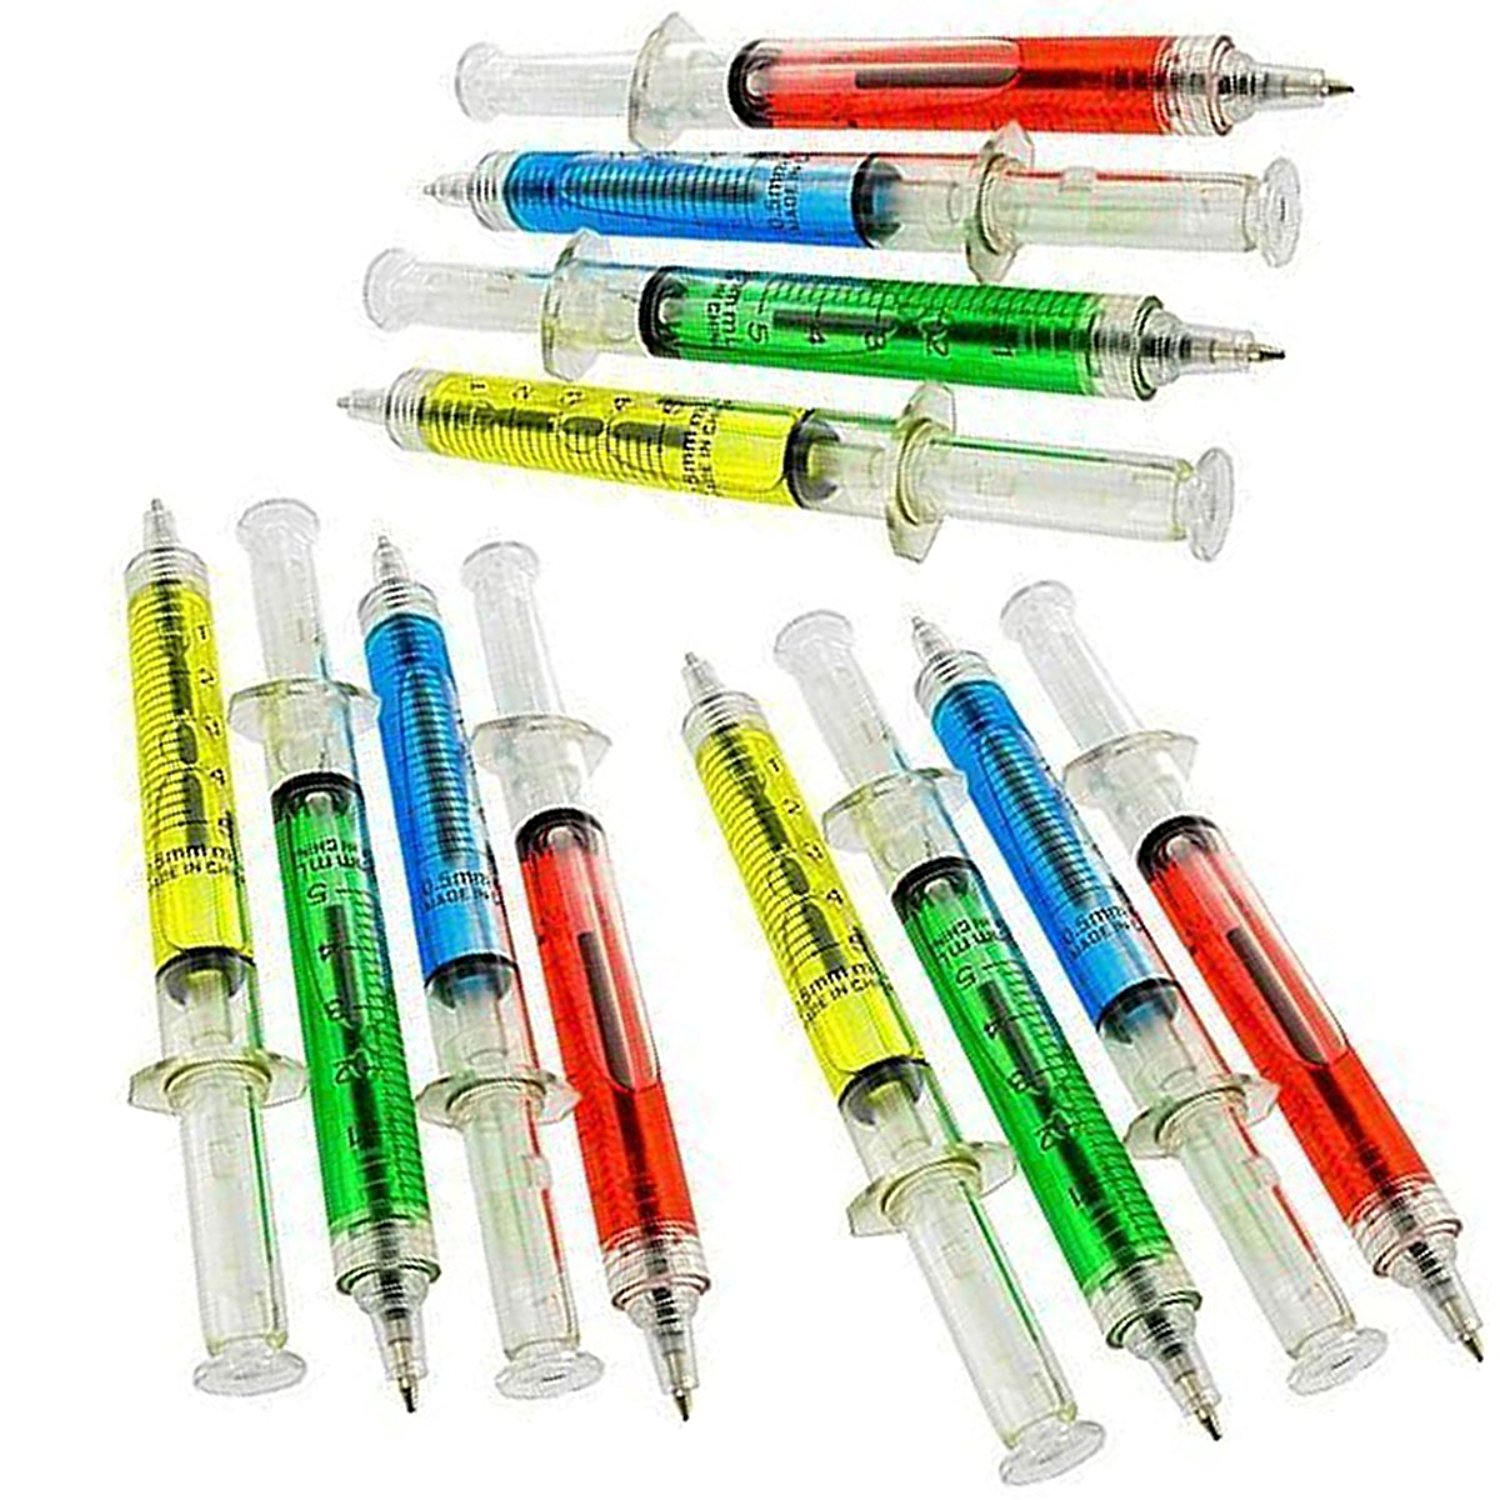 Cheap Funny Pens, find Funny Pens deals on line at Alibaba.com